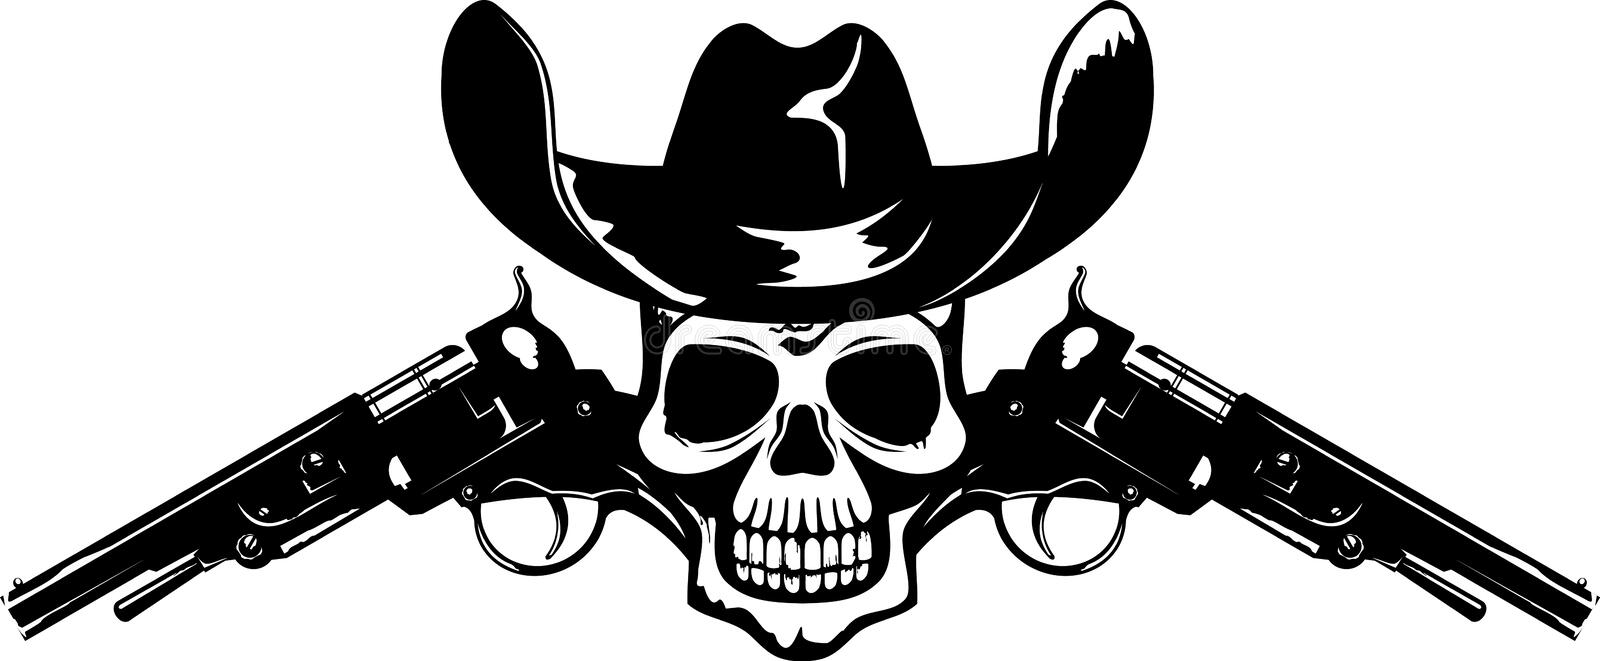 Symbol with skull. Abstract symbol with skull, guns and cowboy's hat in vector format black and white